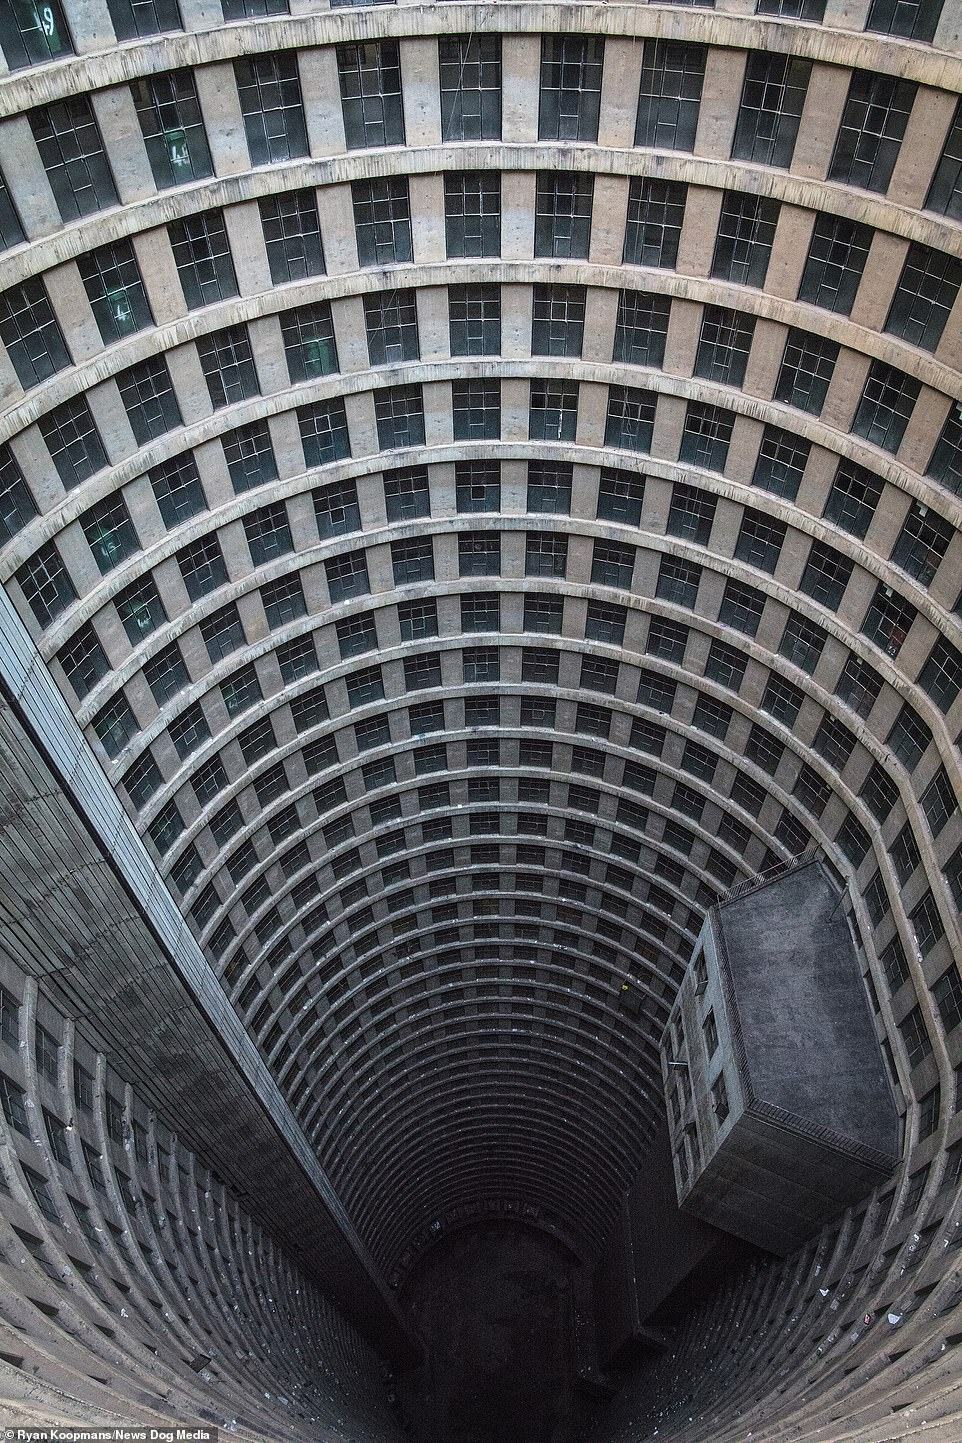 The Ponte City Apartments in Johannesburg, South Africa, July 2017. The unique building has been used as a filming location for several sci-fi thrillers such as District 9 and Resident Evil: The Final Chapter